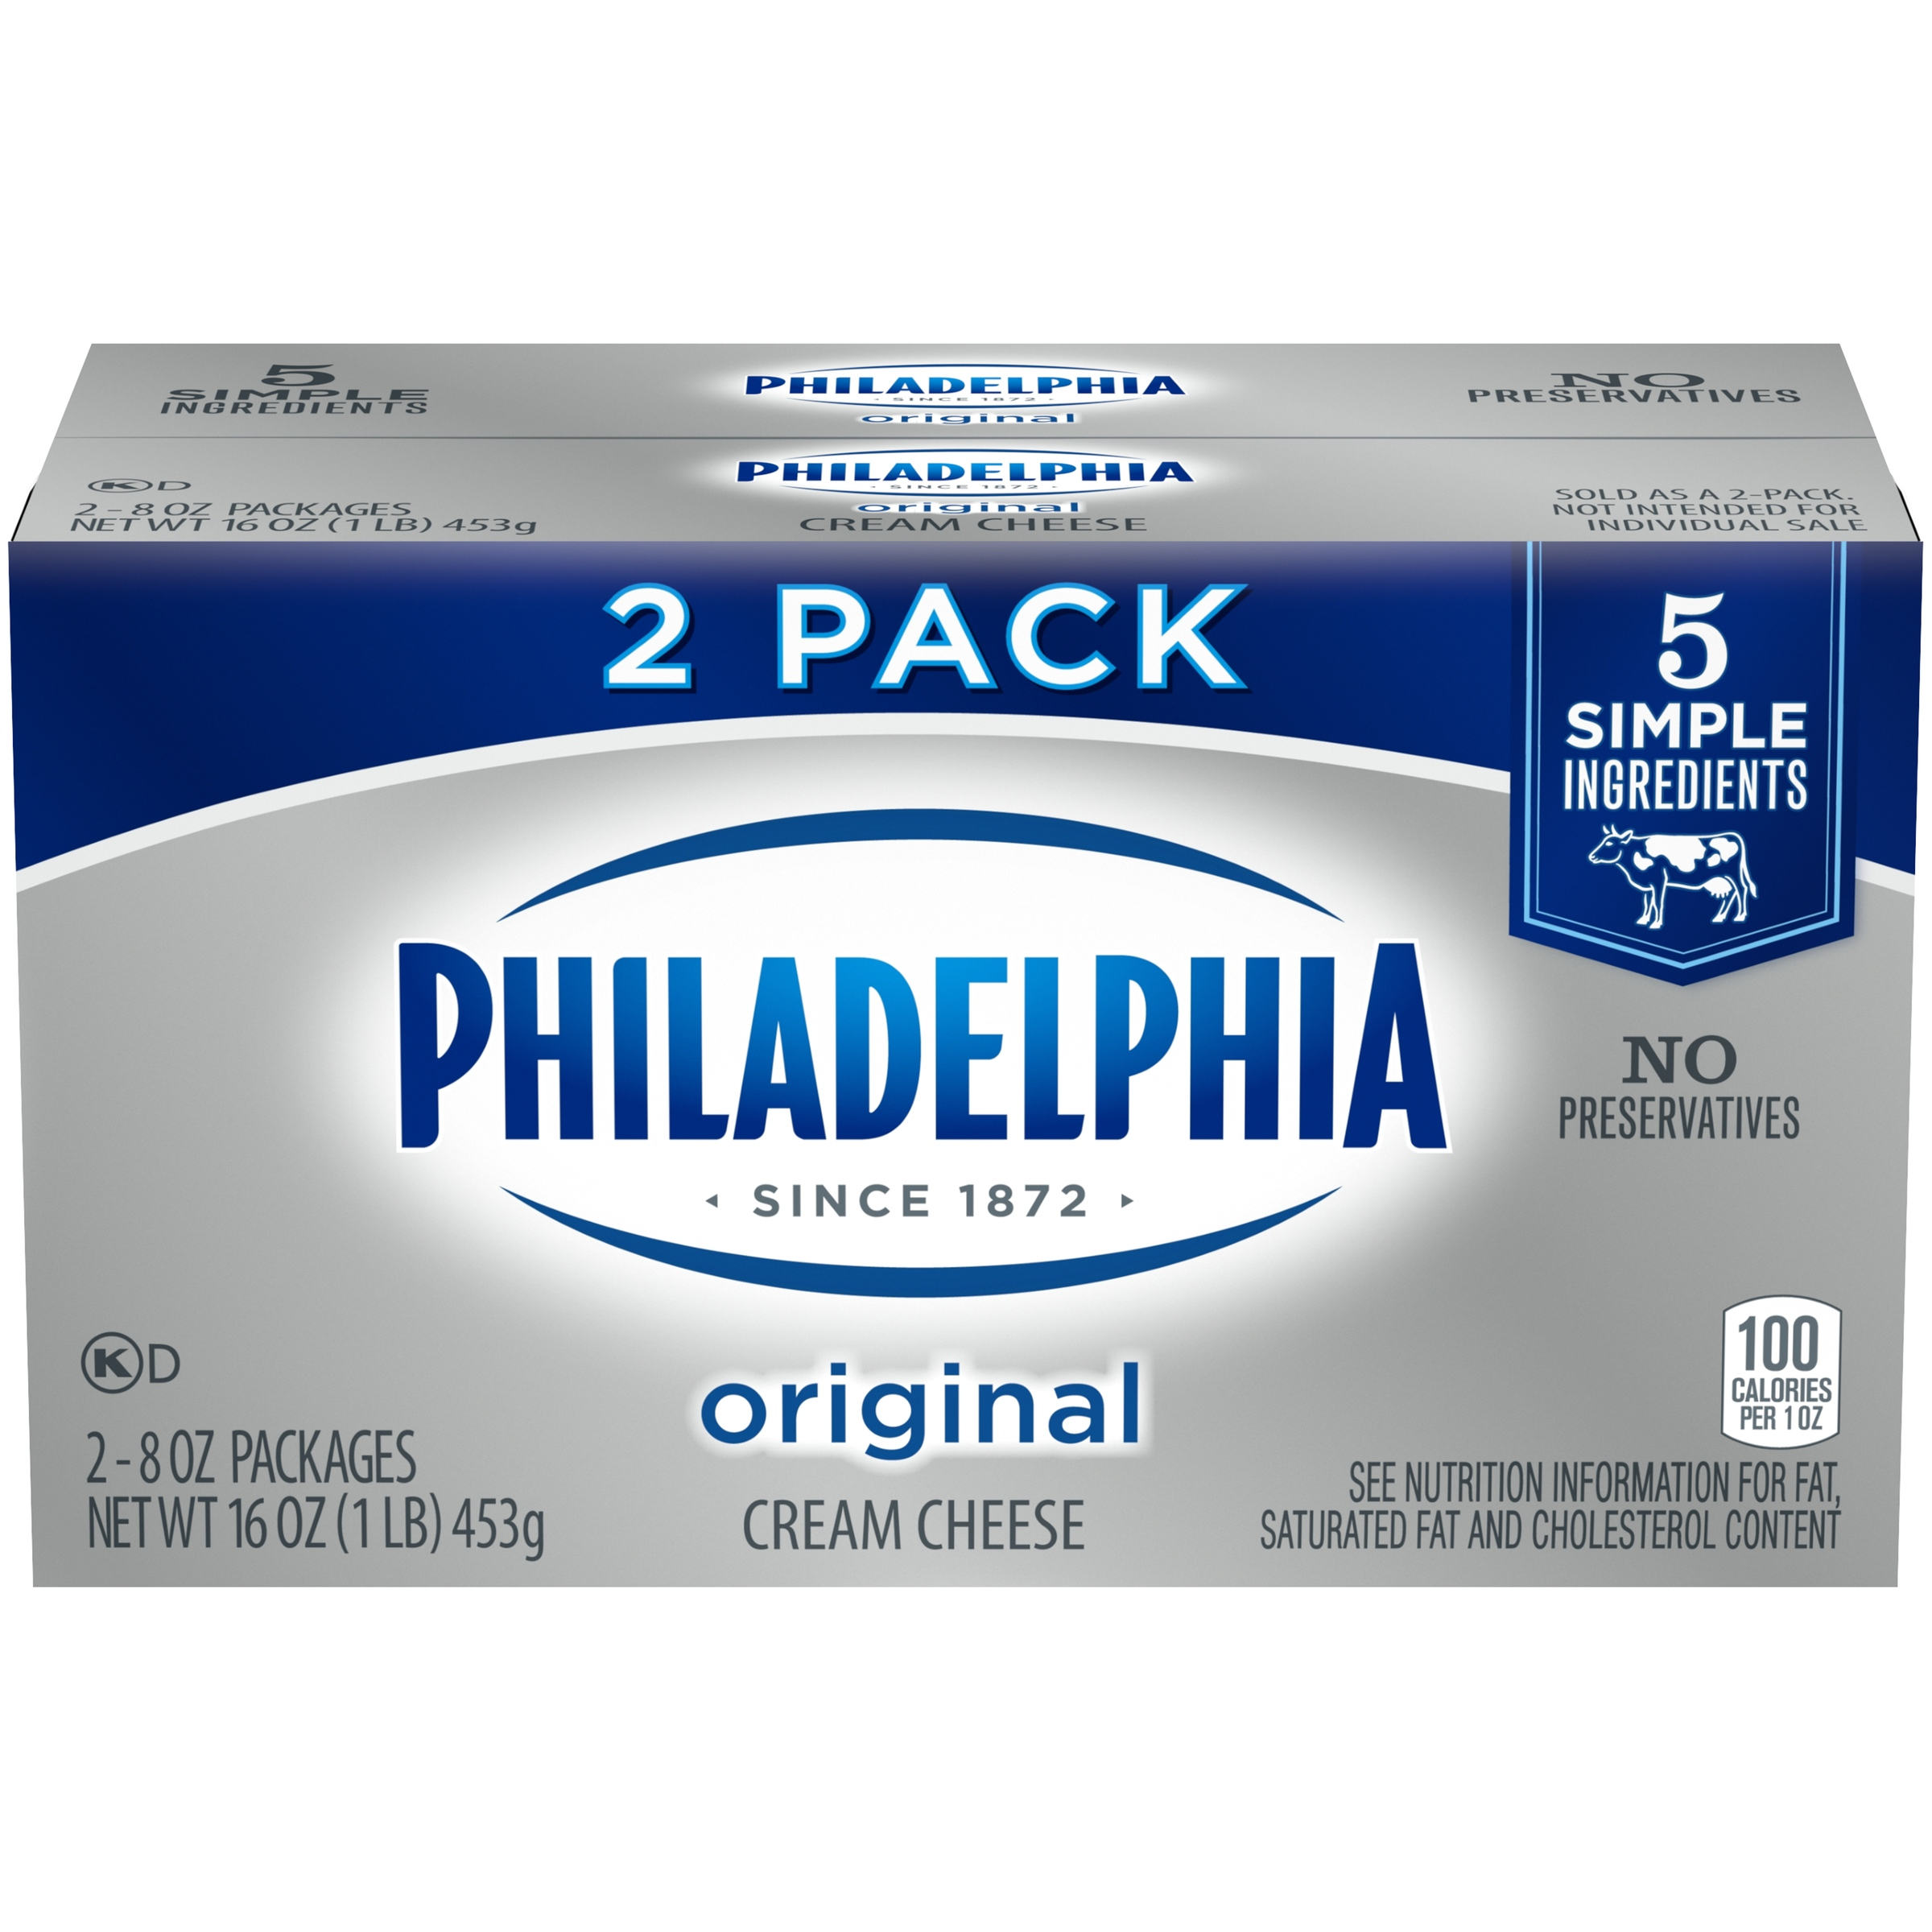 Philadelphia Original Cream Cheese 2-8 oz. Packs